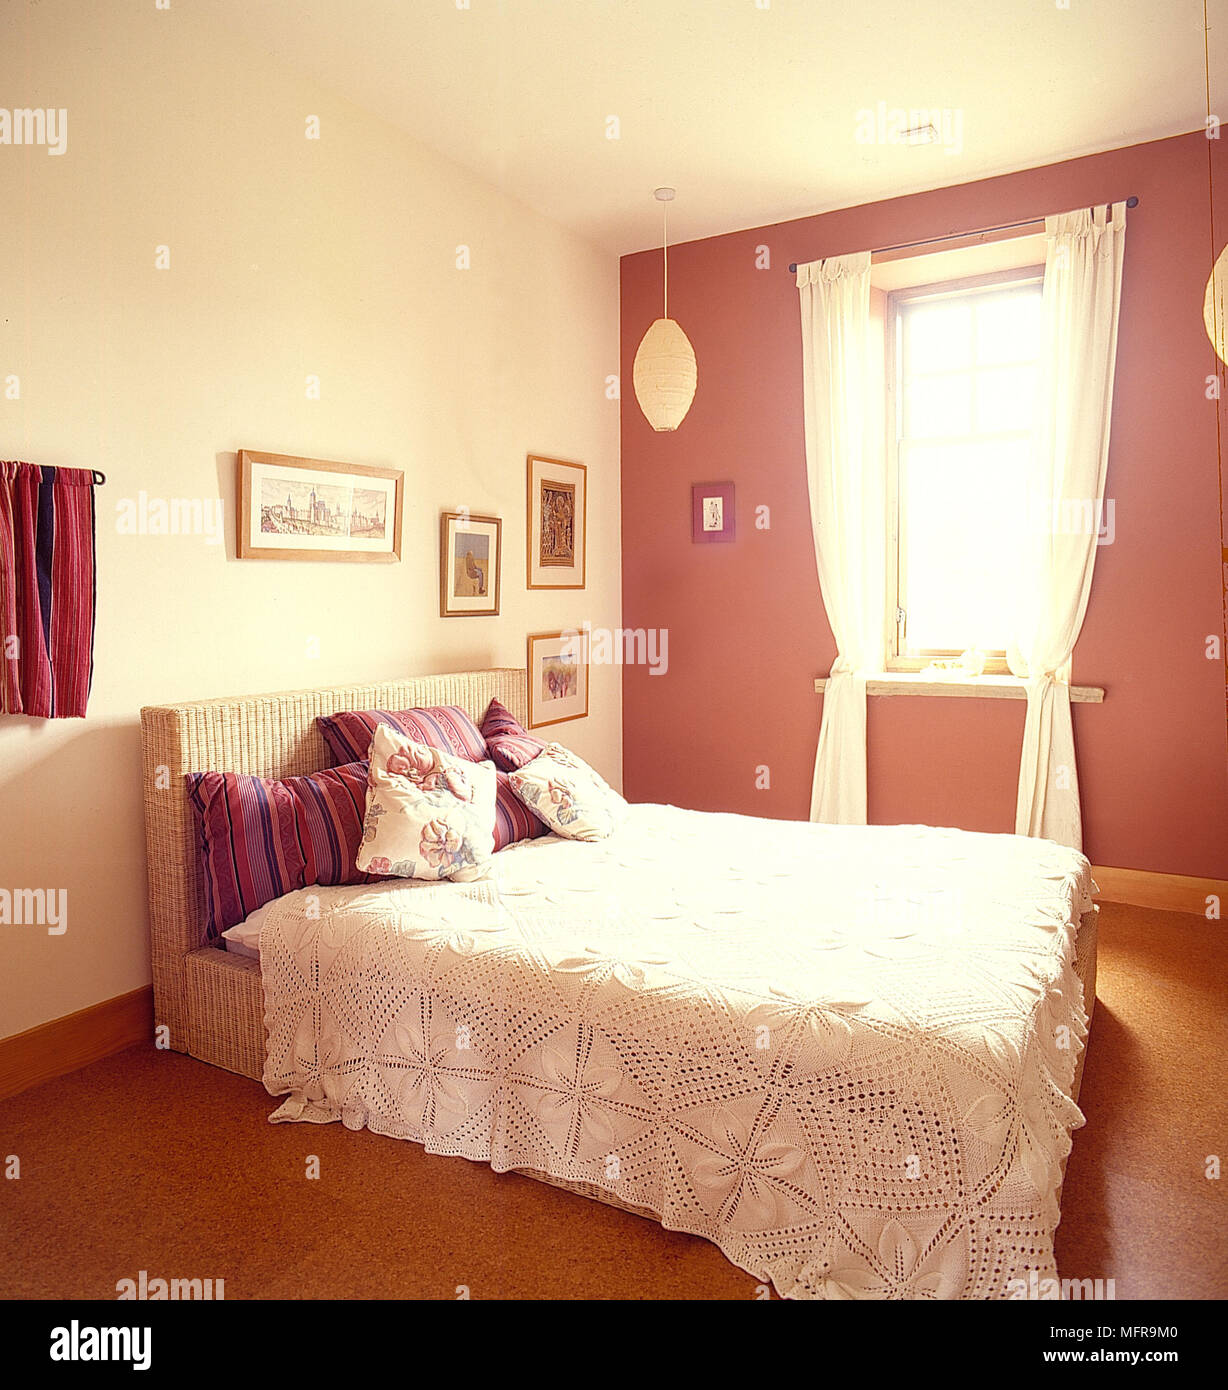 Country bedroom neutral and deep pink walls white bed cover ...